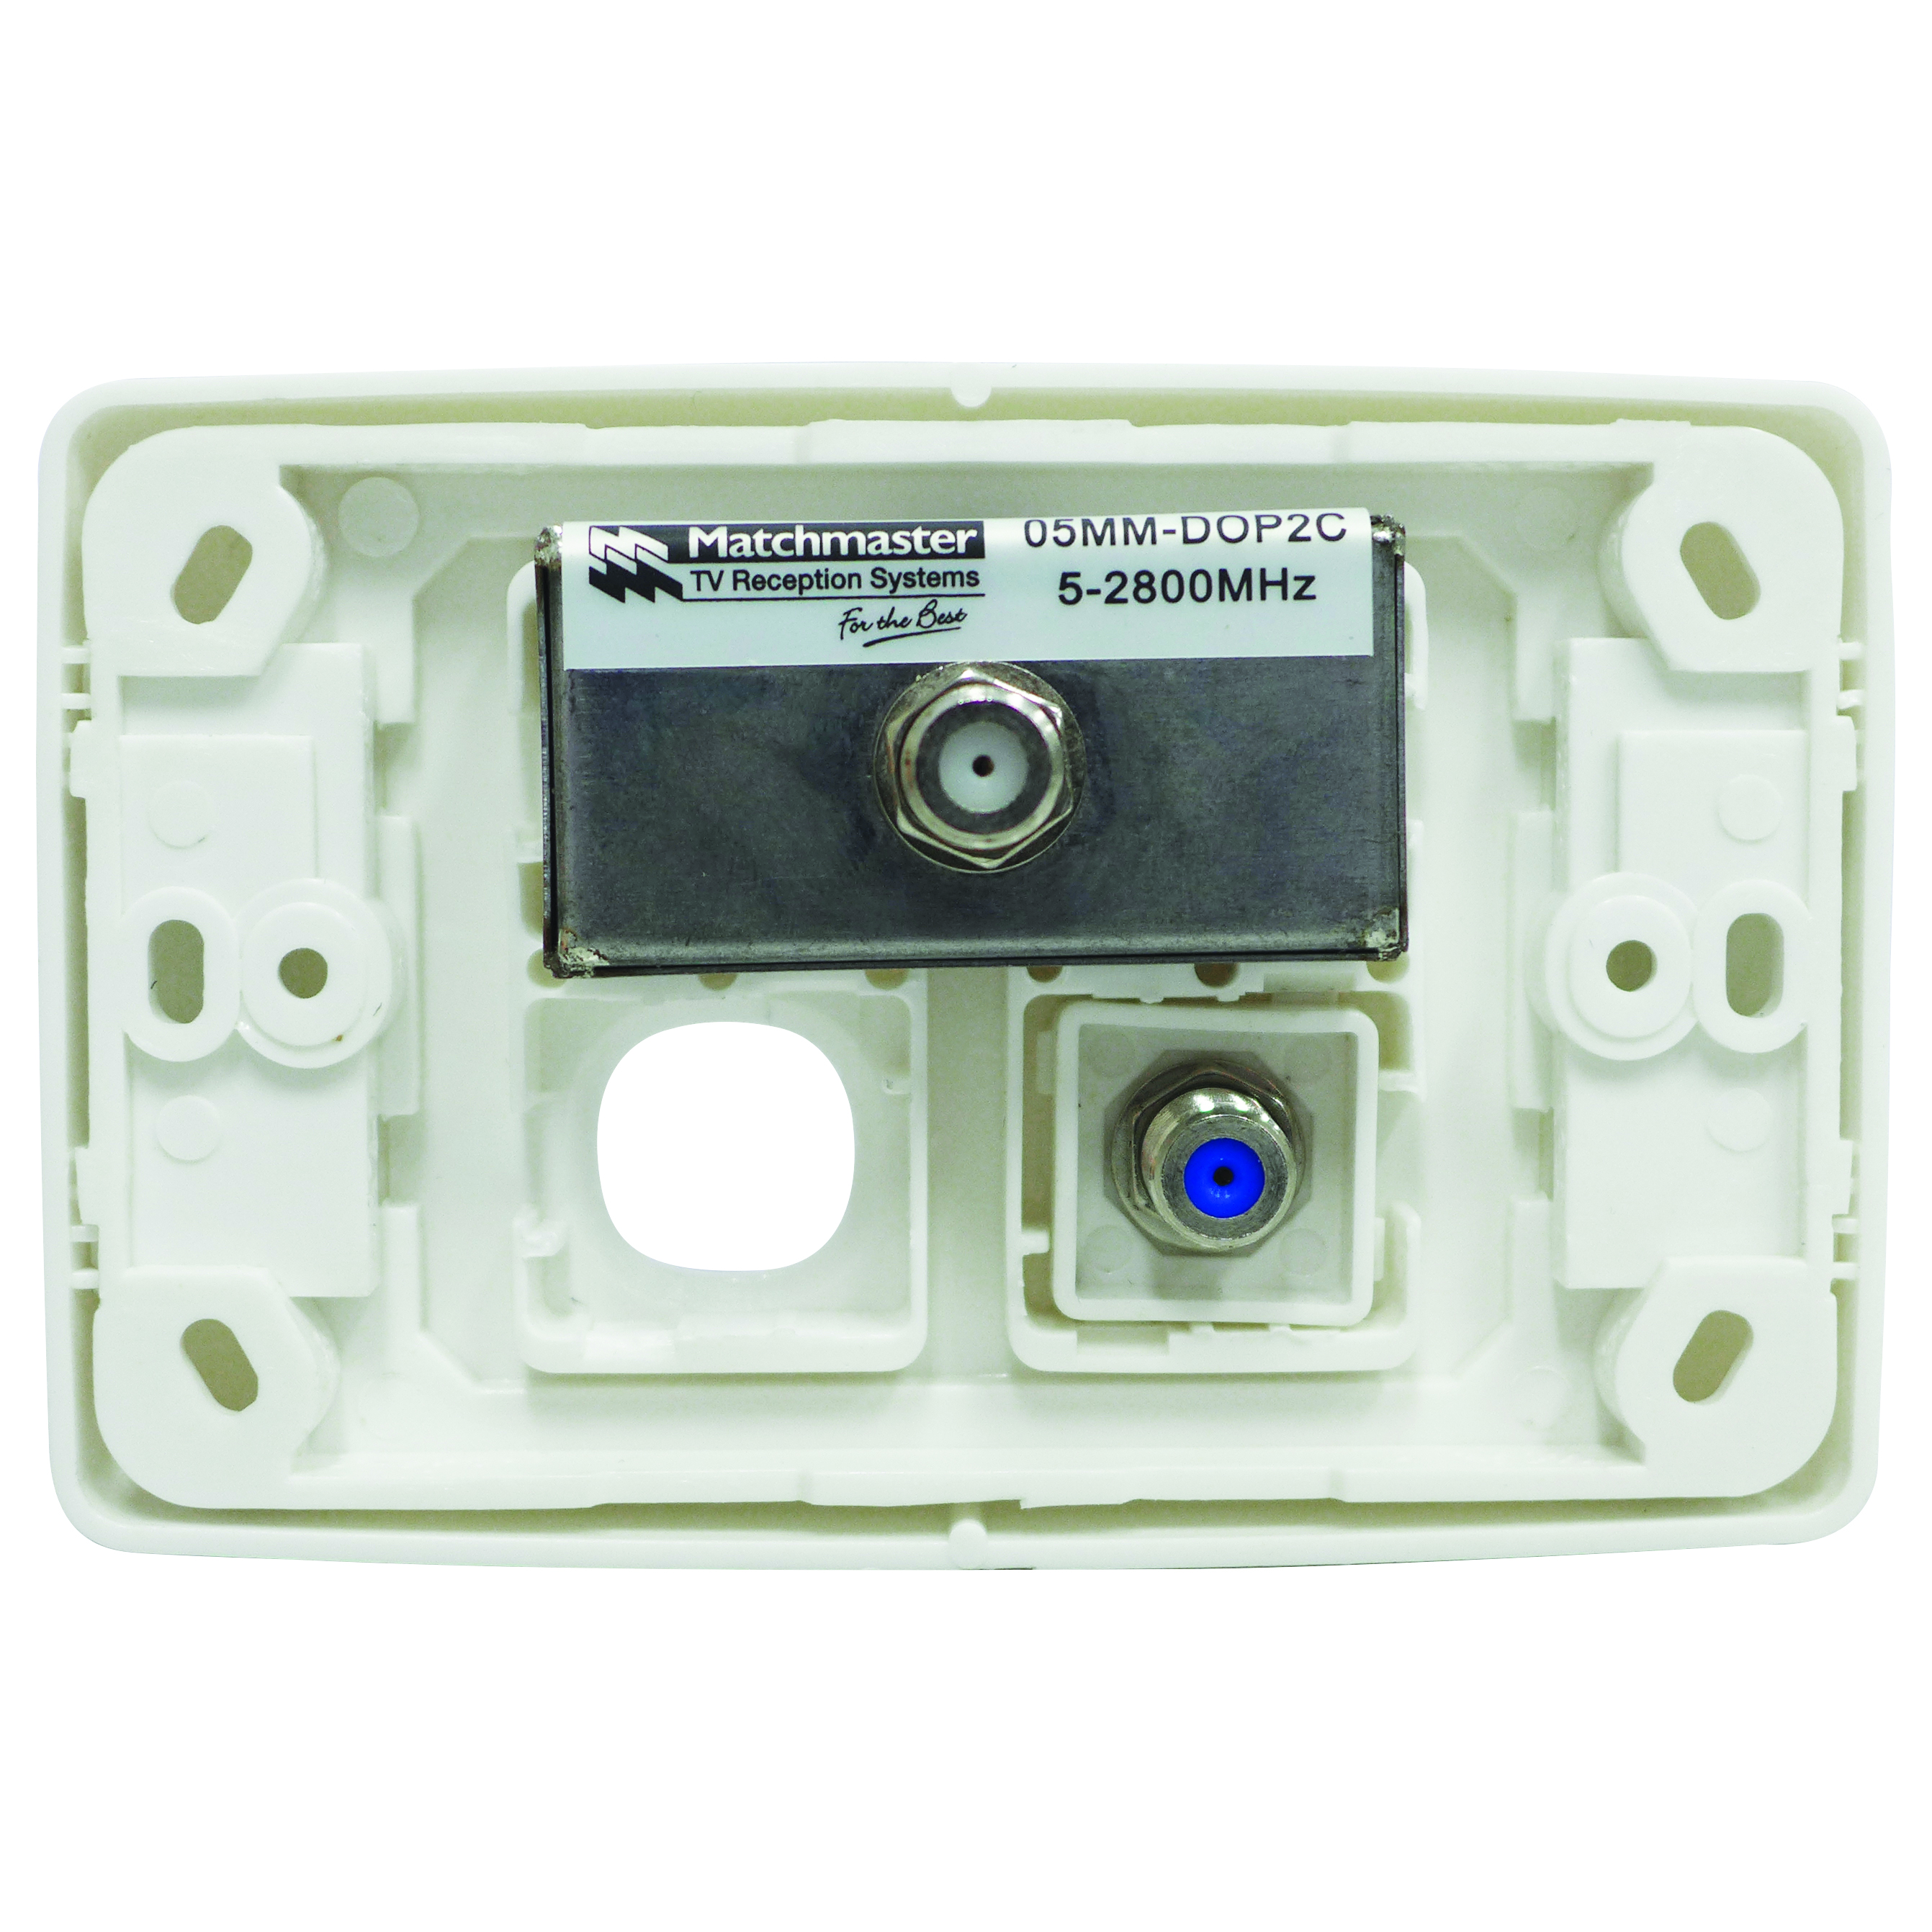 05MM-WP04 - SAT / FTA / PDR Outlet Plate (Foxtel Approved) Back of Product Image